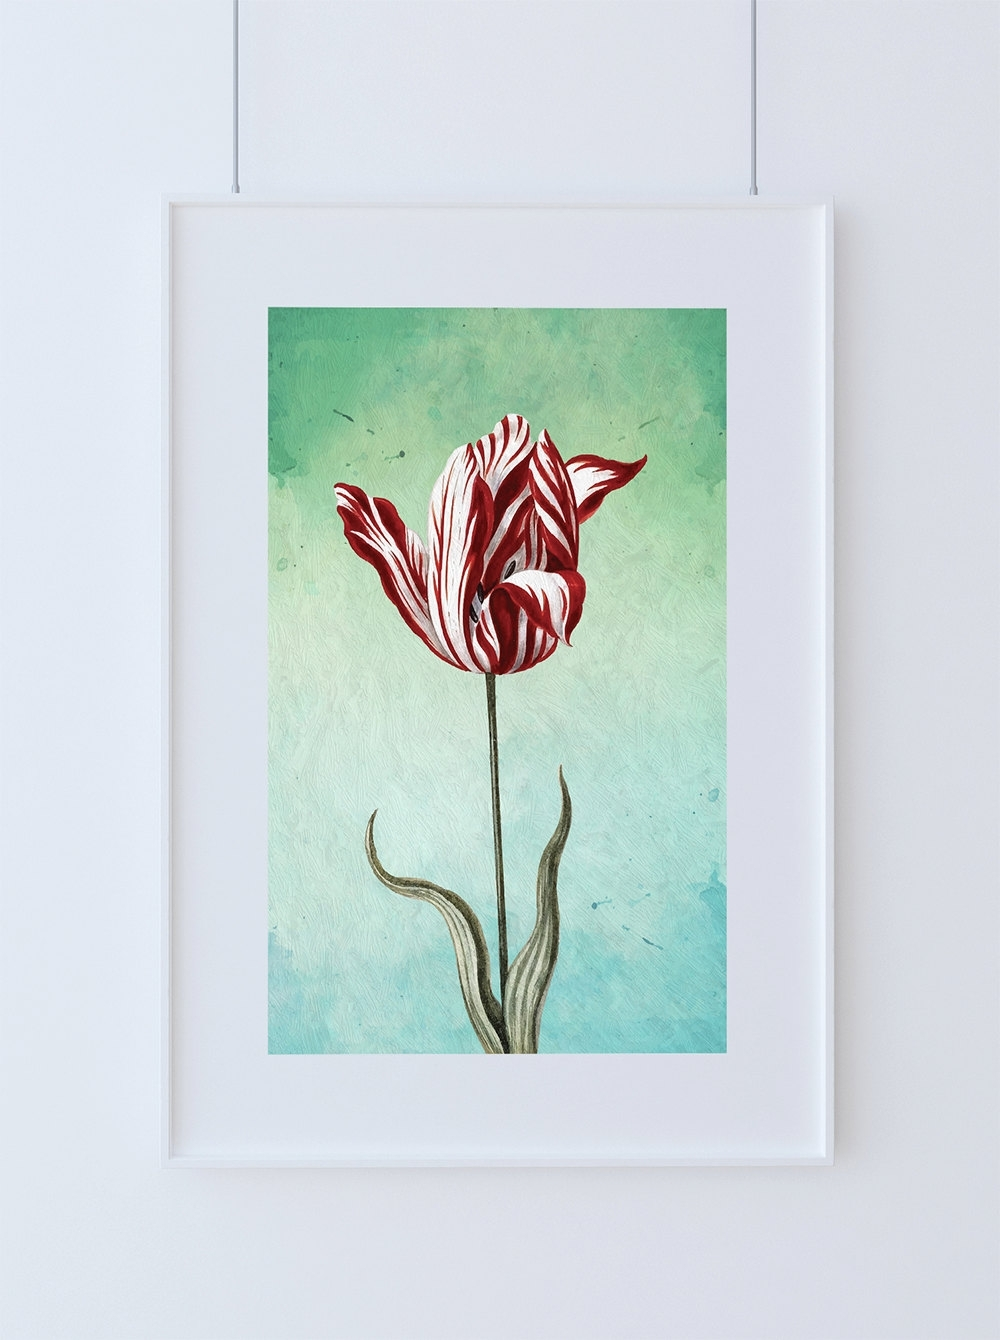 Tulip Print Tulip Art Botanical Print Flower Tulips Decor Floral Throughout Recent Floral Wall Art (View 16 of 20)